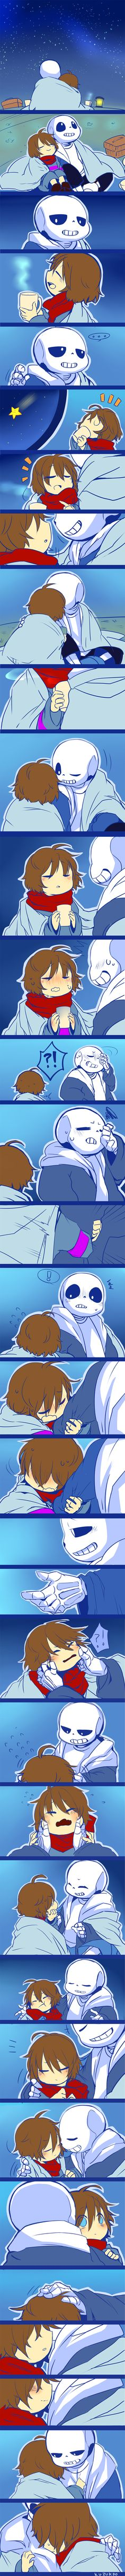 Undertale by kuzukago on DeviantArt I REGRET NOTHIIIIIIIIING!!!